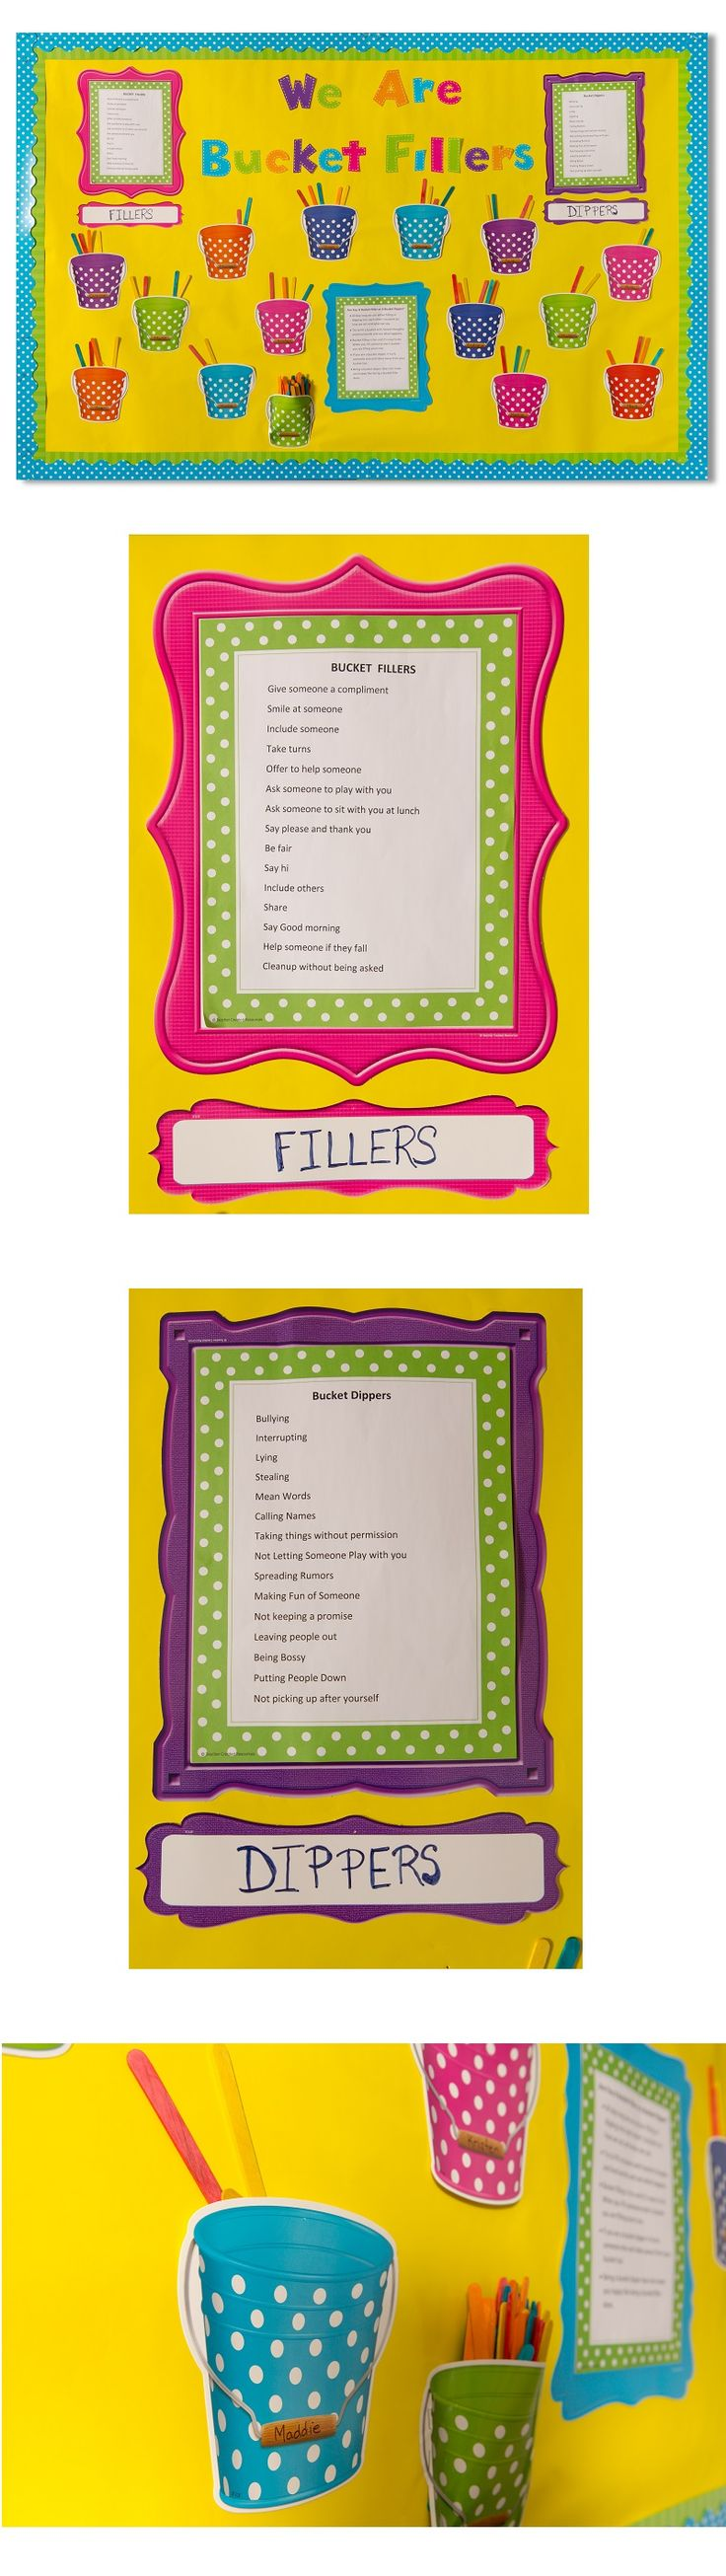 Have you used Bucket Fillers in your classroom? They encourage positive behavior and help students learn to be respectful and kind.